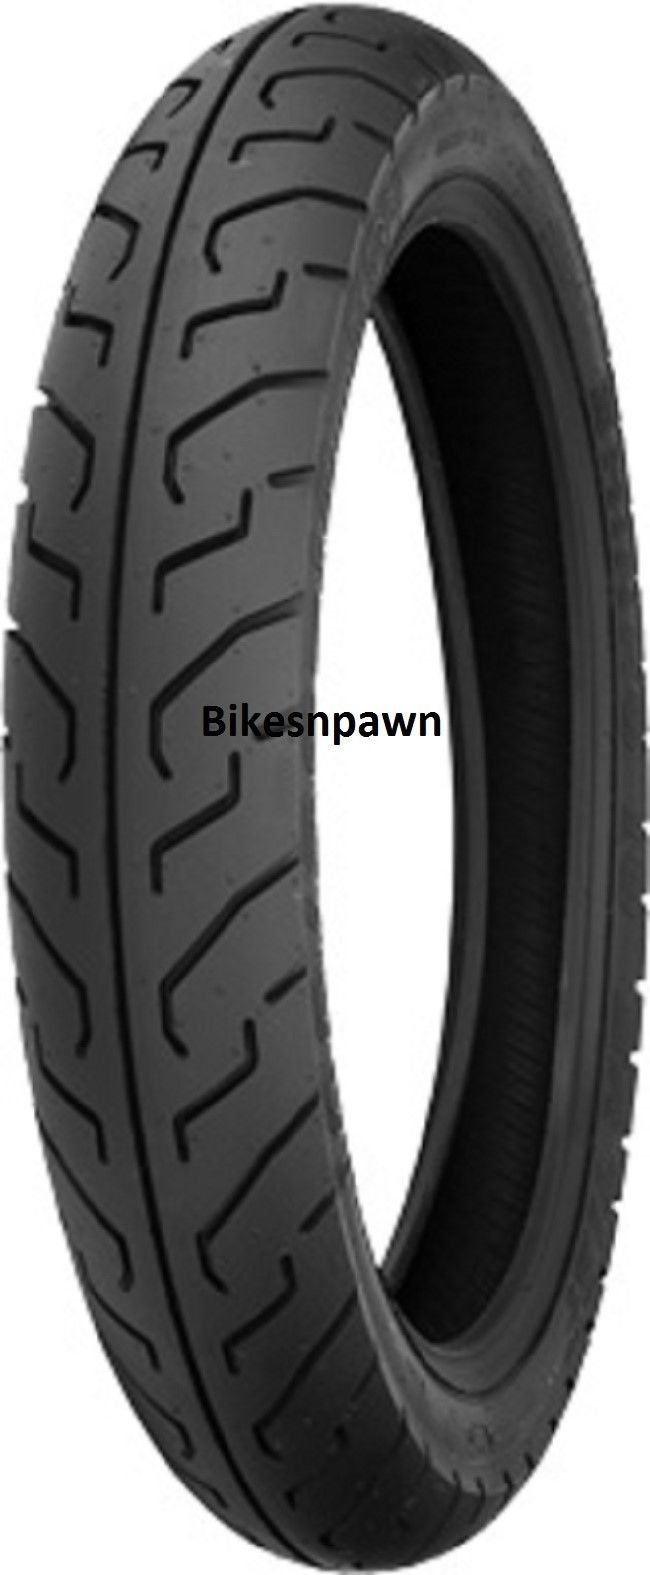 New Shinko 712 110/90-19 Front Tire 61 H Tubeless